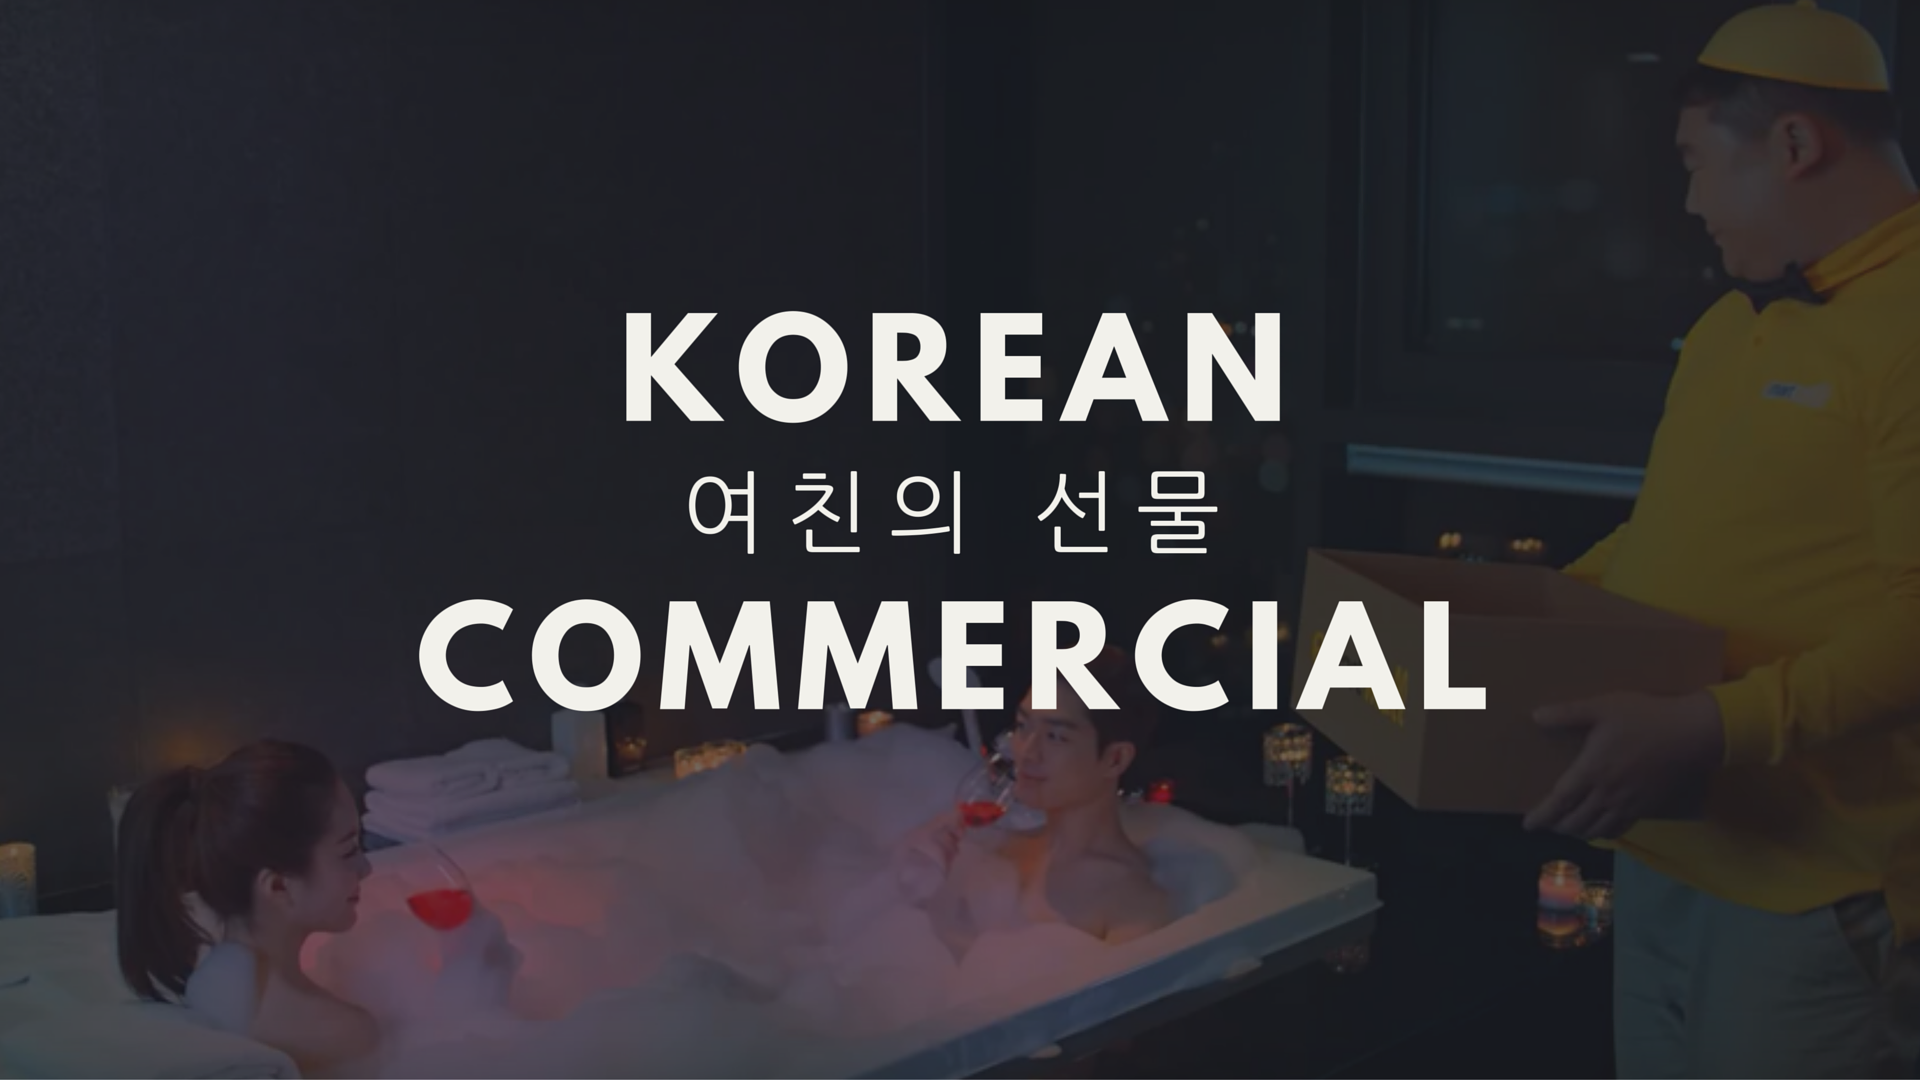 Korean Commercial: 여친의 선물